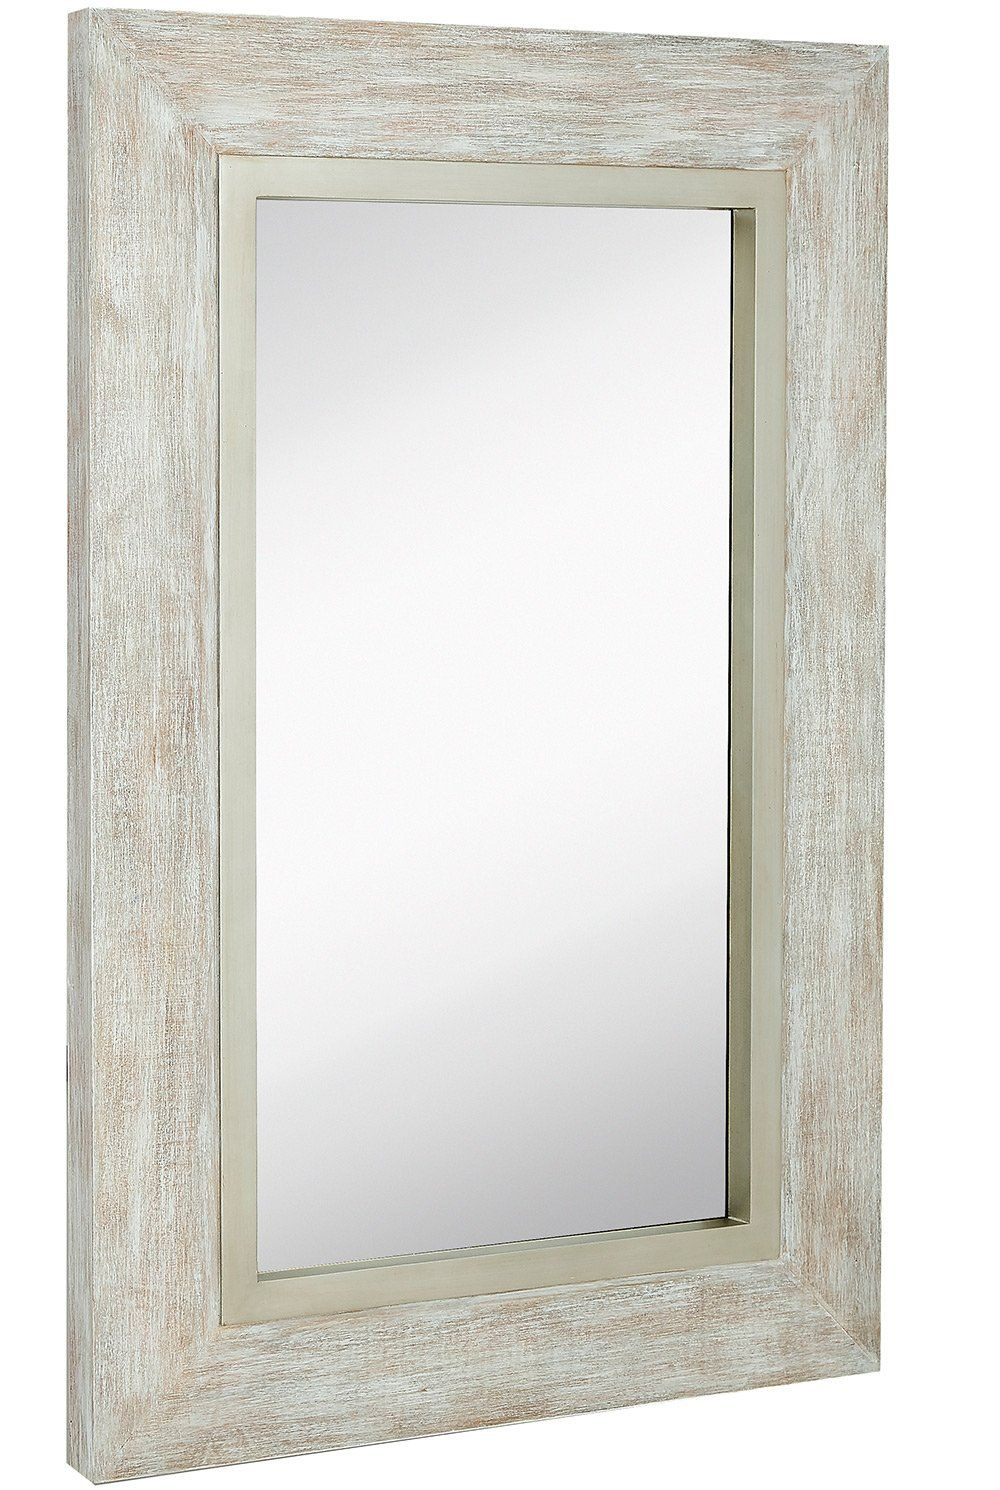 Large white washed framed mirror beach distressed frame - White wood framed bathroom mirrors ...